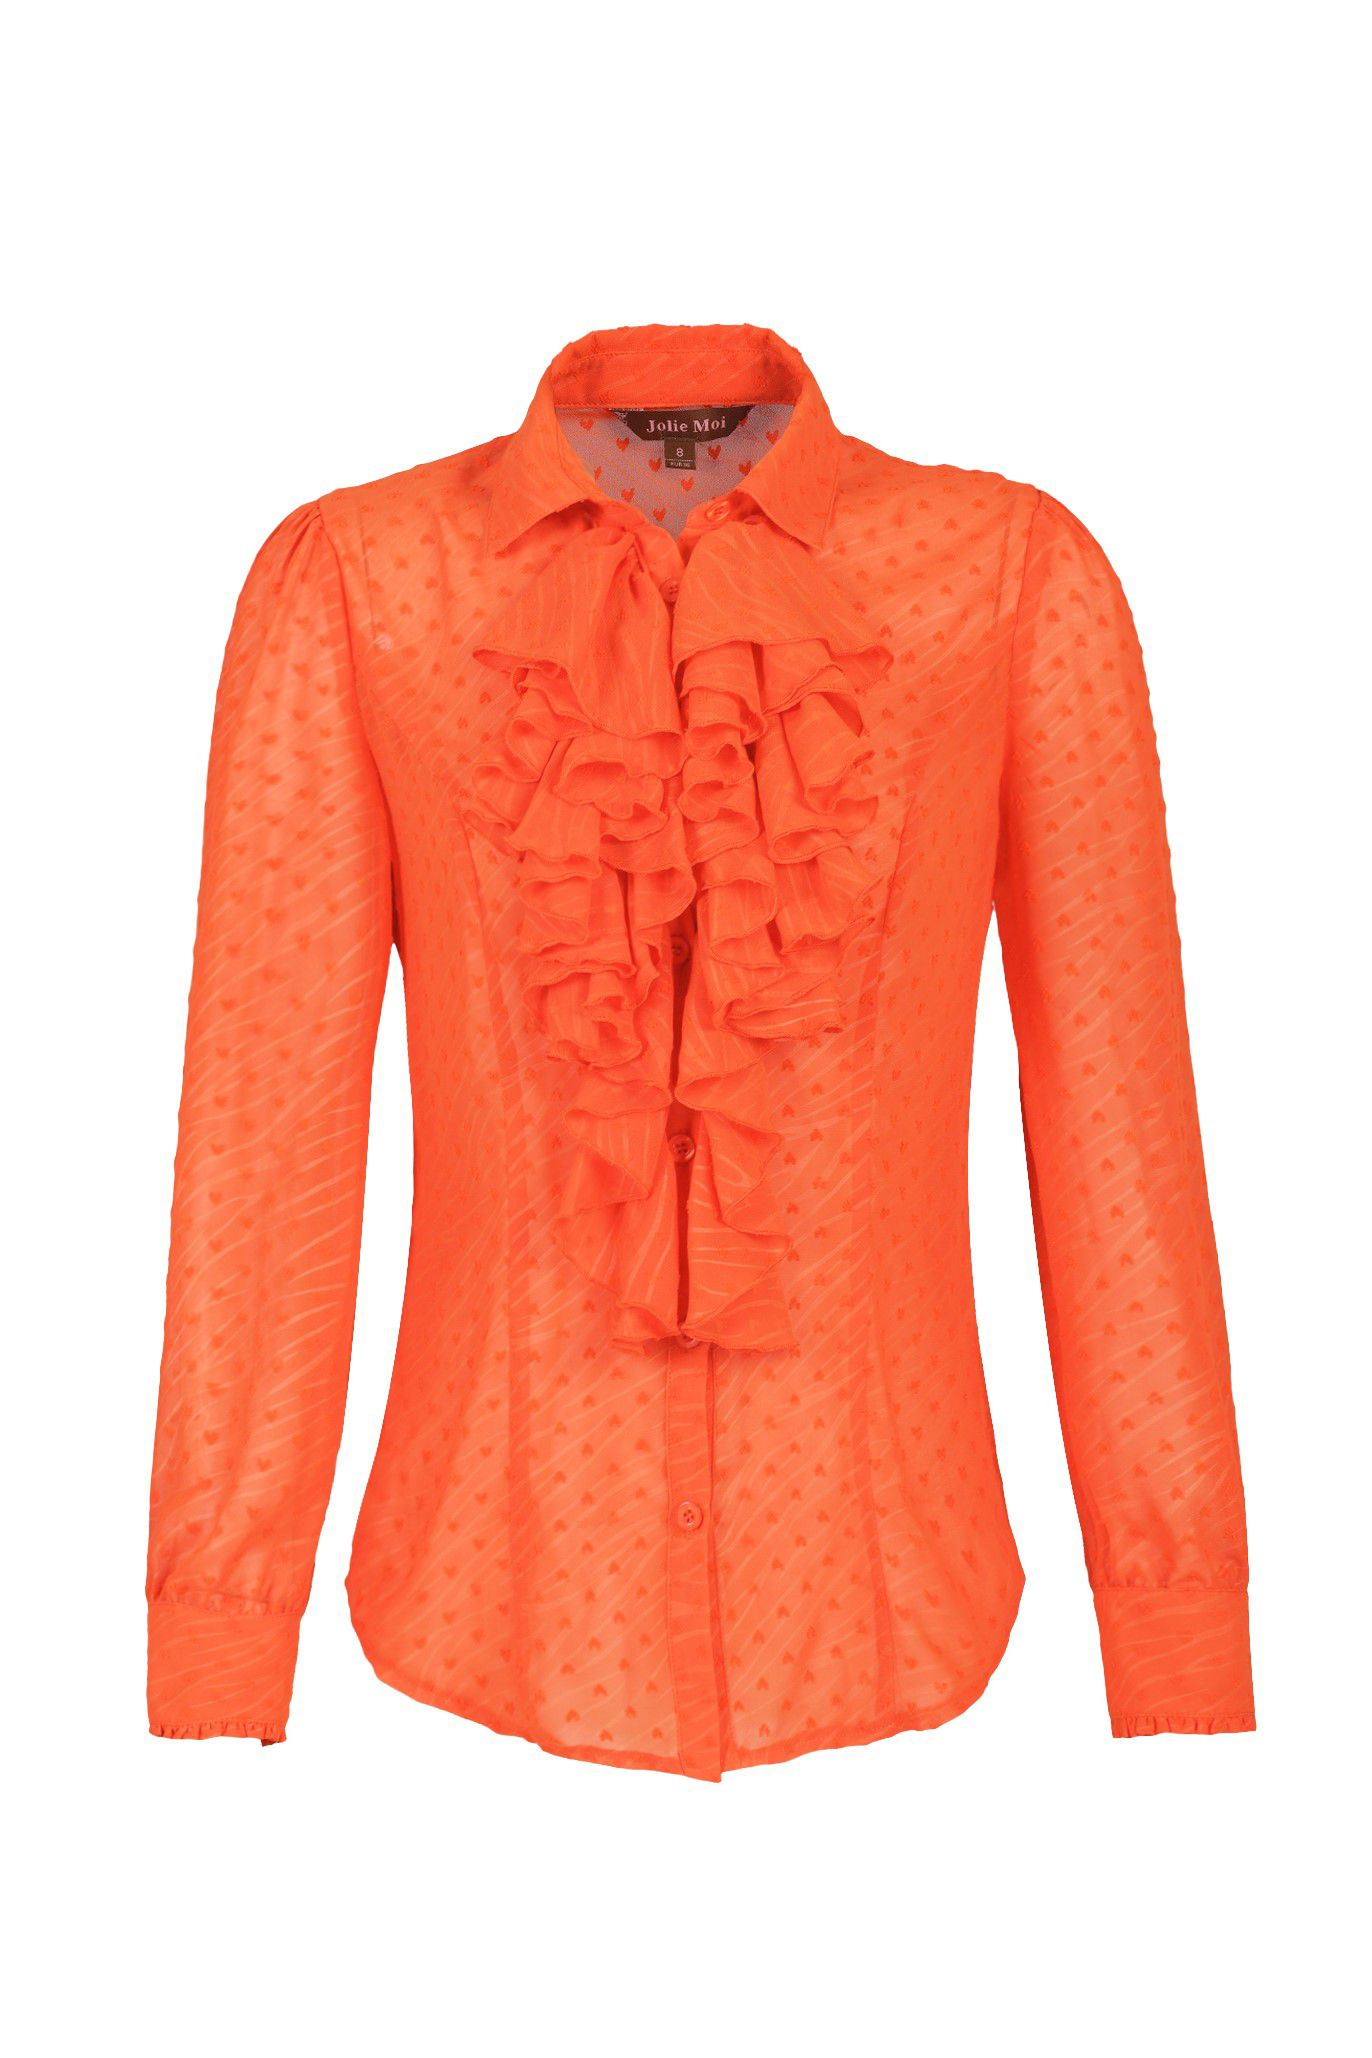 Jolie Moi Textured Chiffon Ruffle Blouse, Orange